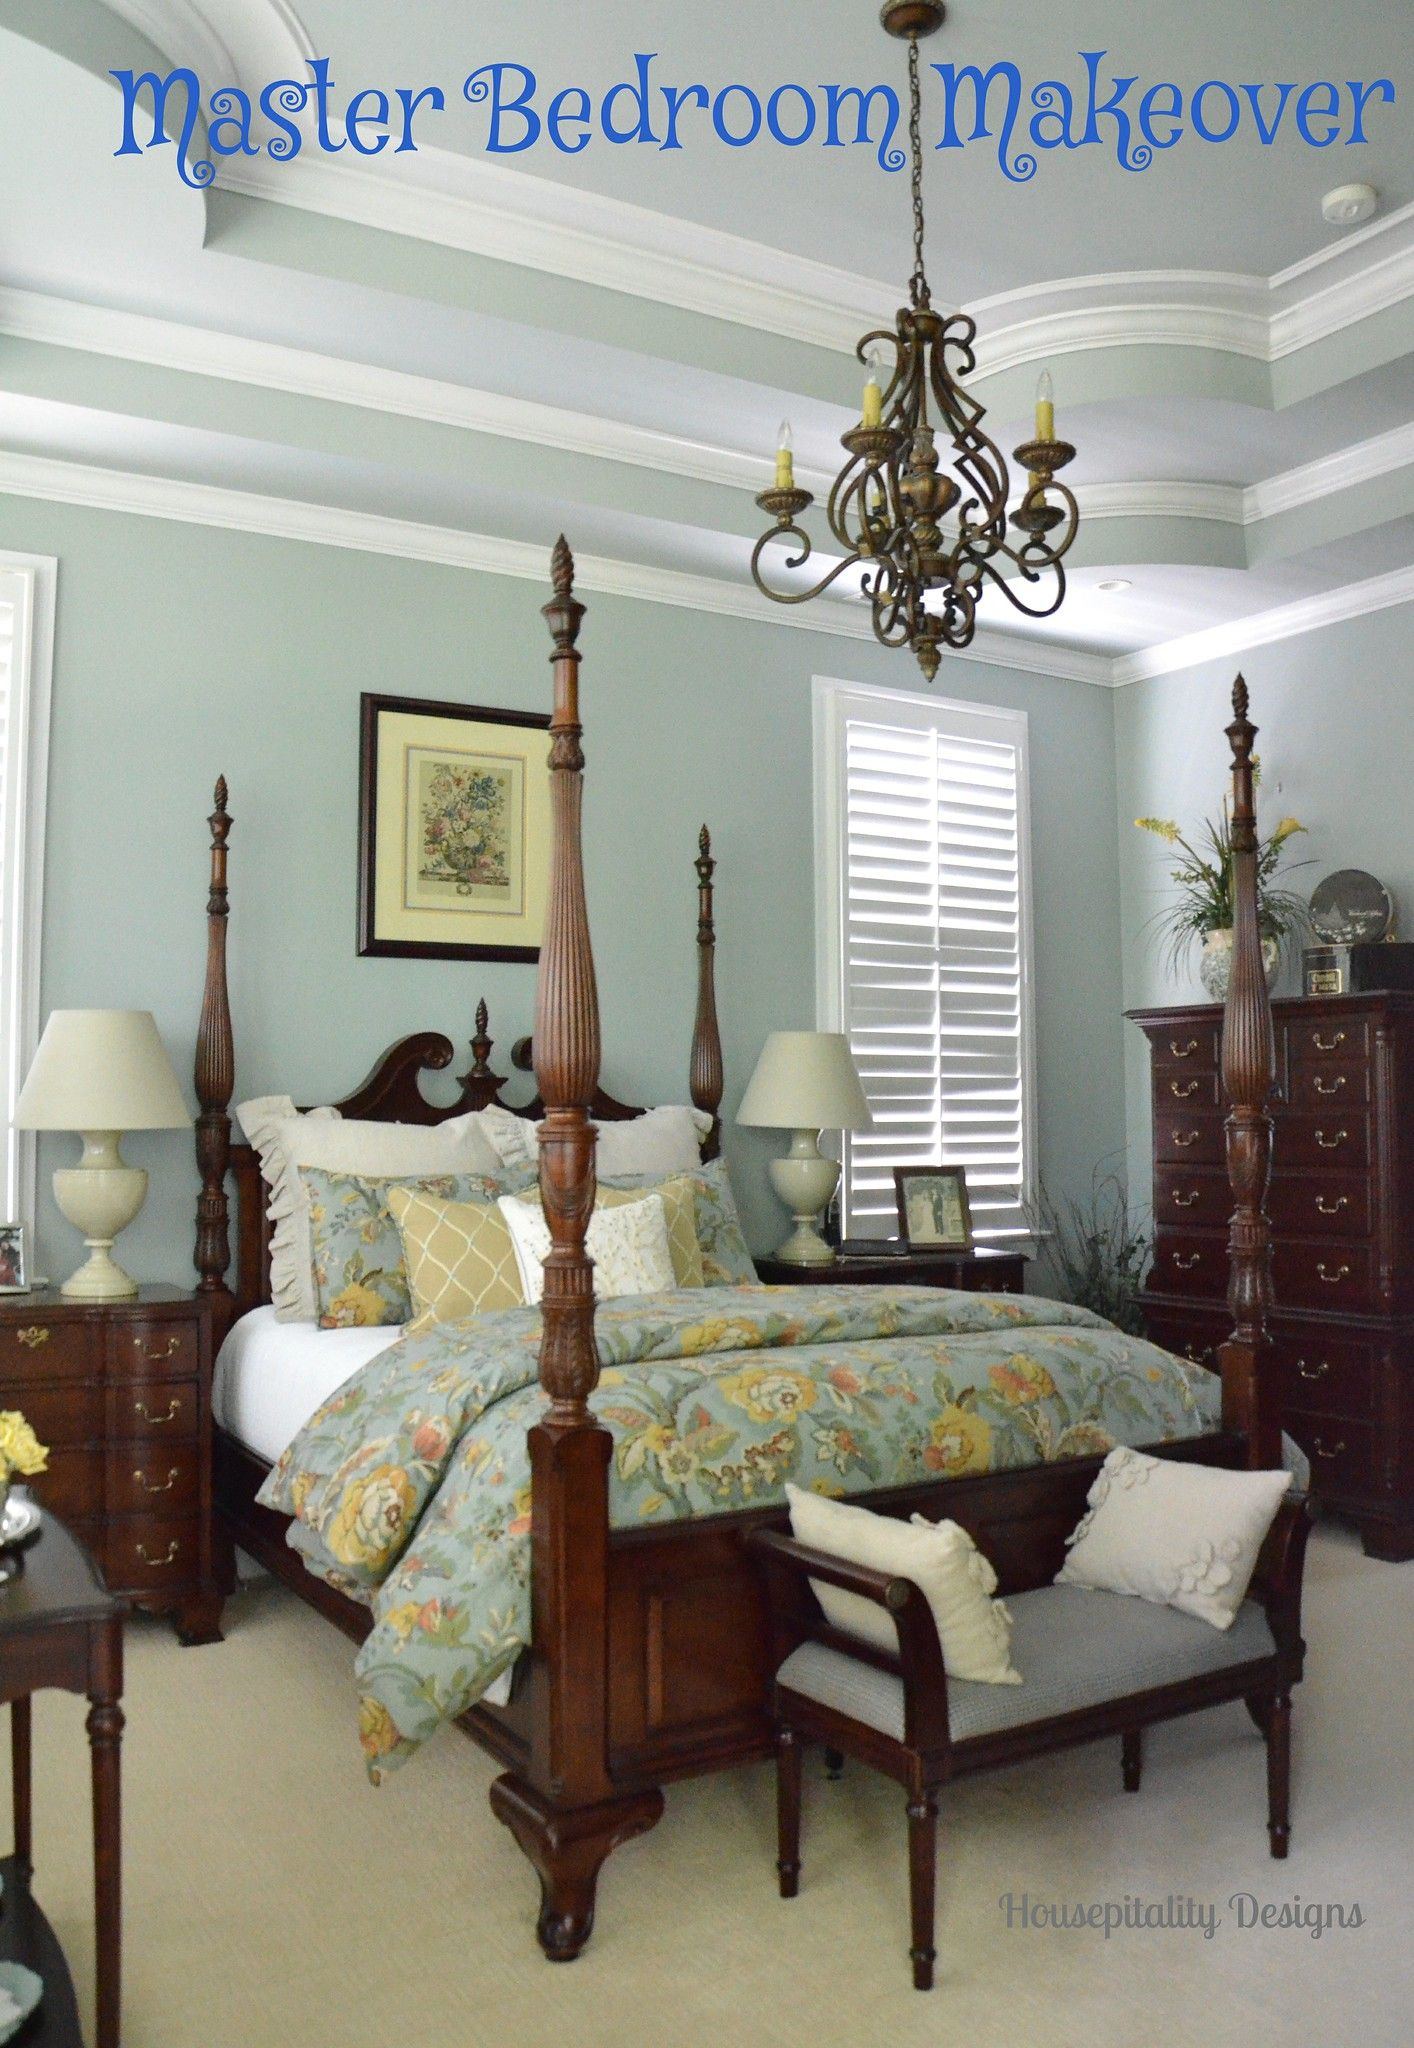 Master Bedroom Makeover in 2020 | Traditional bedroom ...